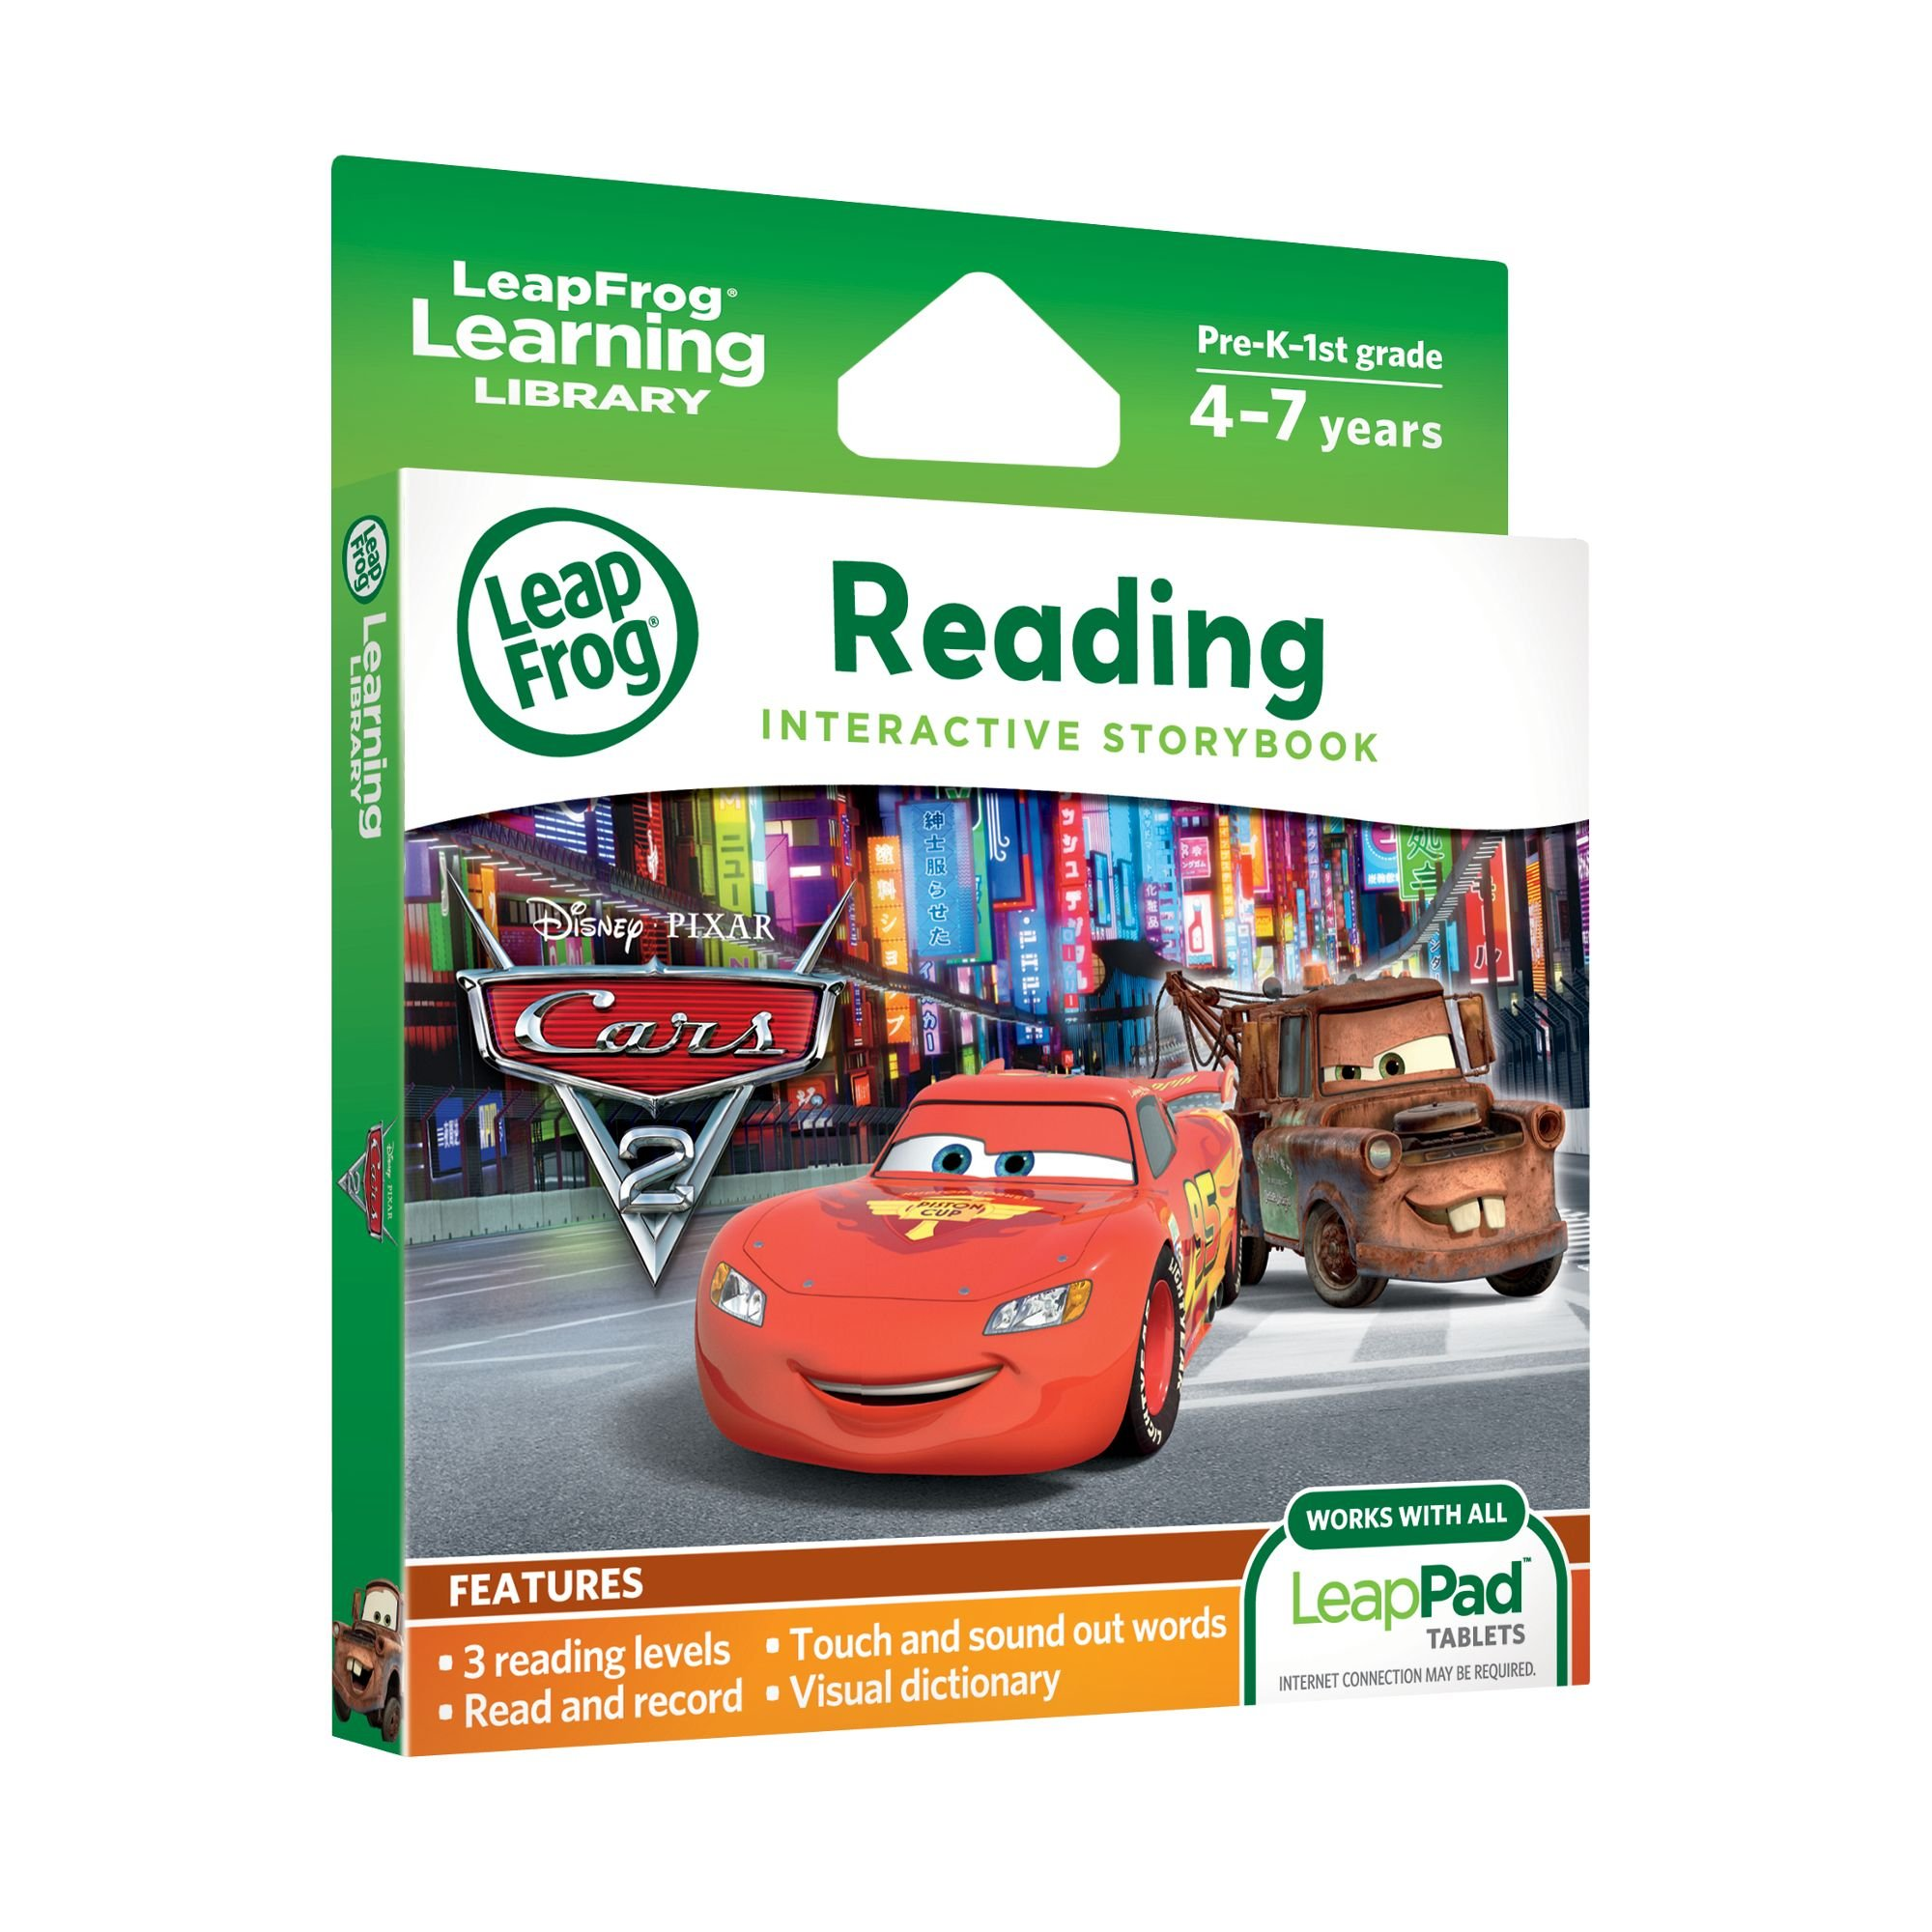 LeapFrog LeapPad Ultra eBook: Disney Pixar Cars 2 (works with all LeapPad Tablets) by LeapFrog (Image #2)